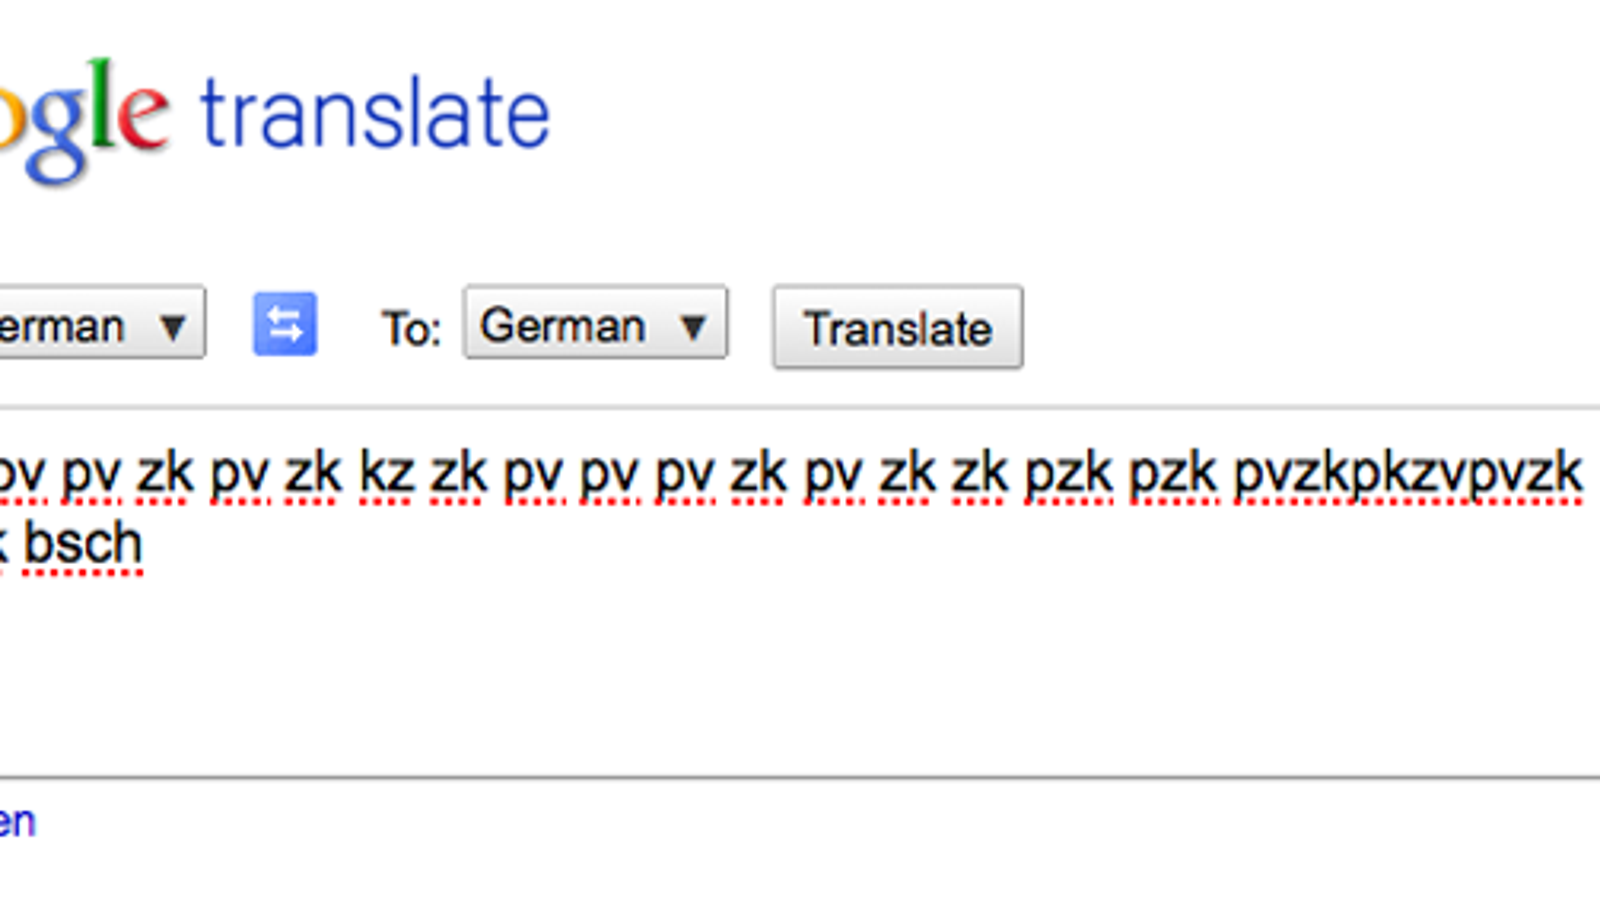 How To Make Google Translate Your Own Personal Beatboxer